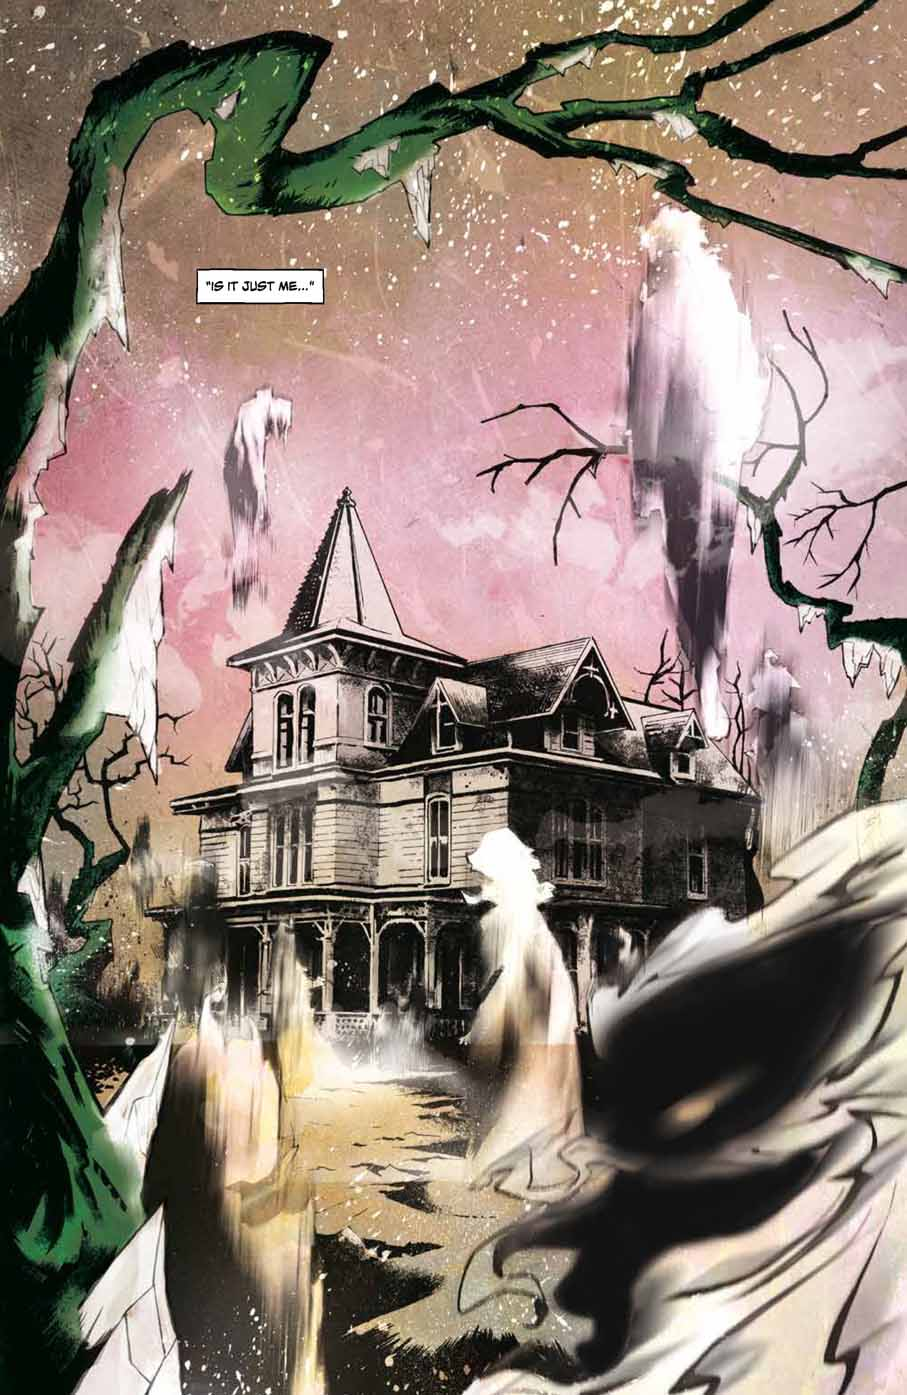 Horror Cartoonists Mark Torres; Blurry ghosts surrounding an old mansion.